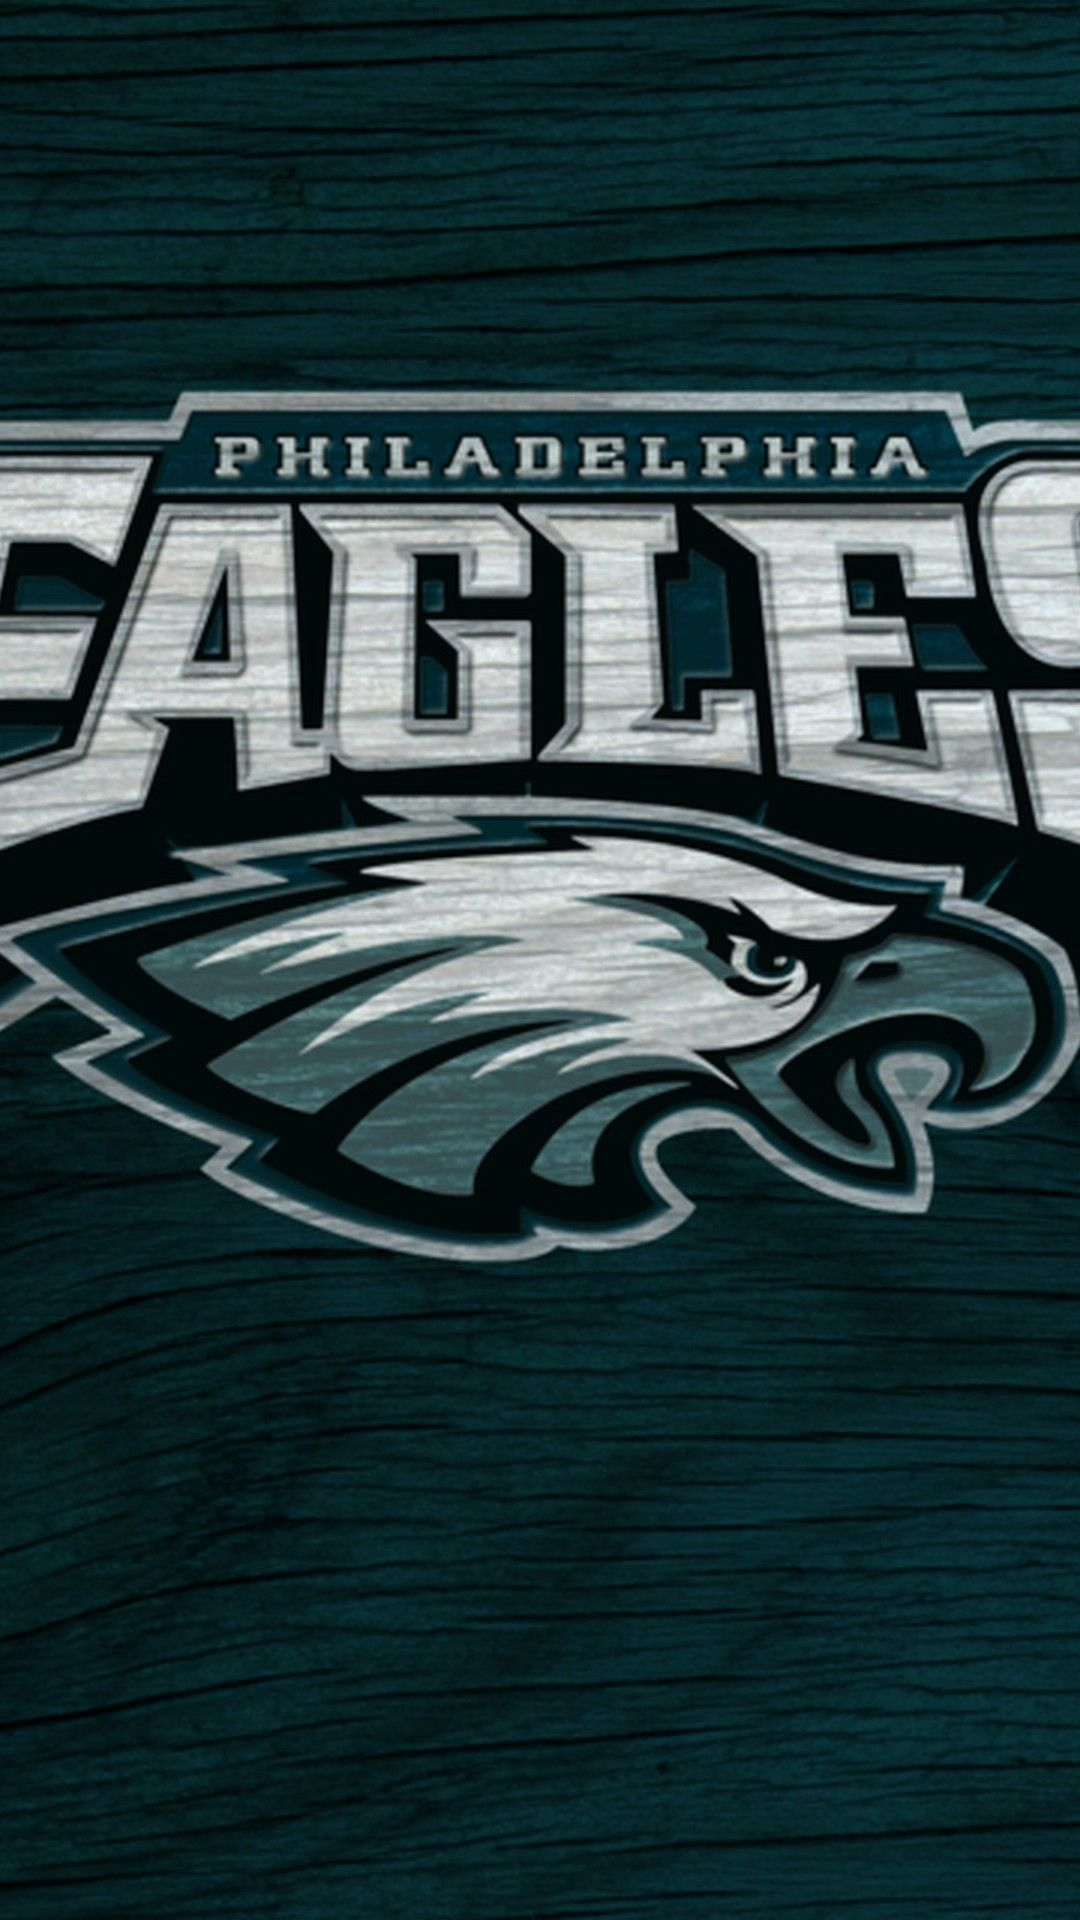 Wallpaper Phila Eagles Iphone Philadelphia Eagles 1080x1920 Wallpaper Teahub Io